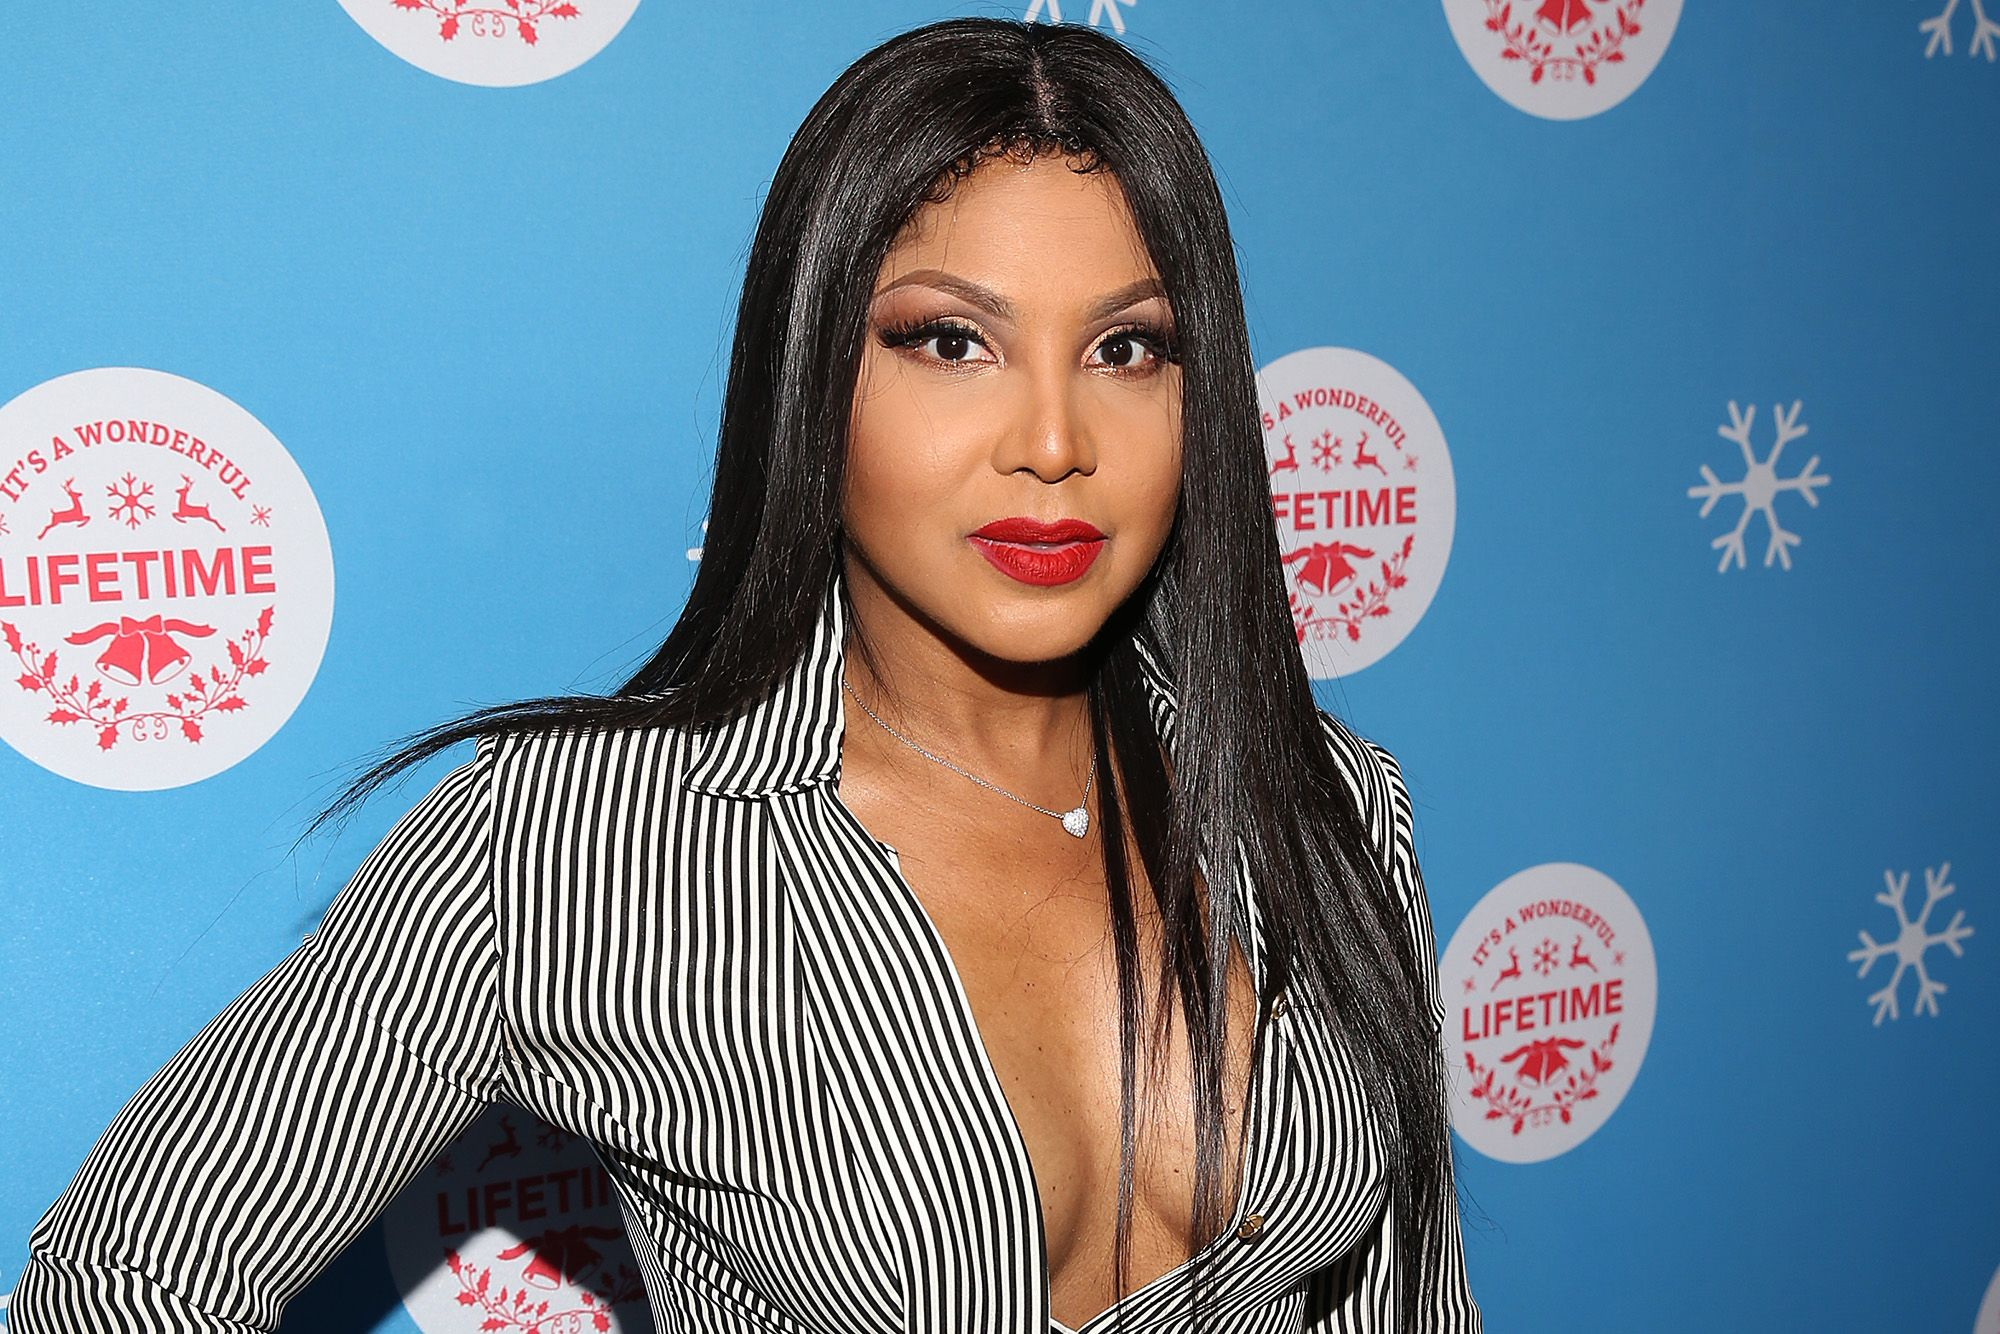 Toni Braxton Is Having The Time Of Her Life On A Boat Trip - Check Out Her Video